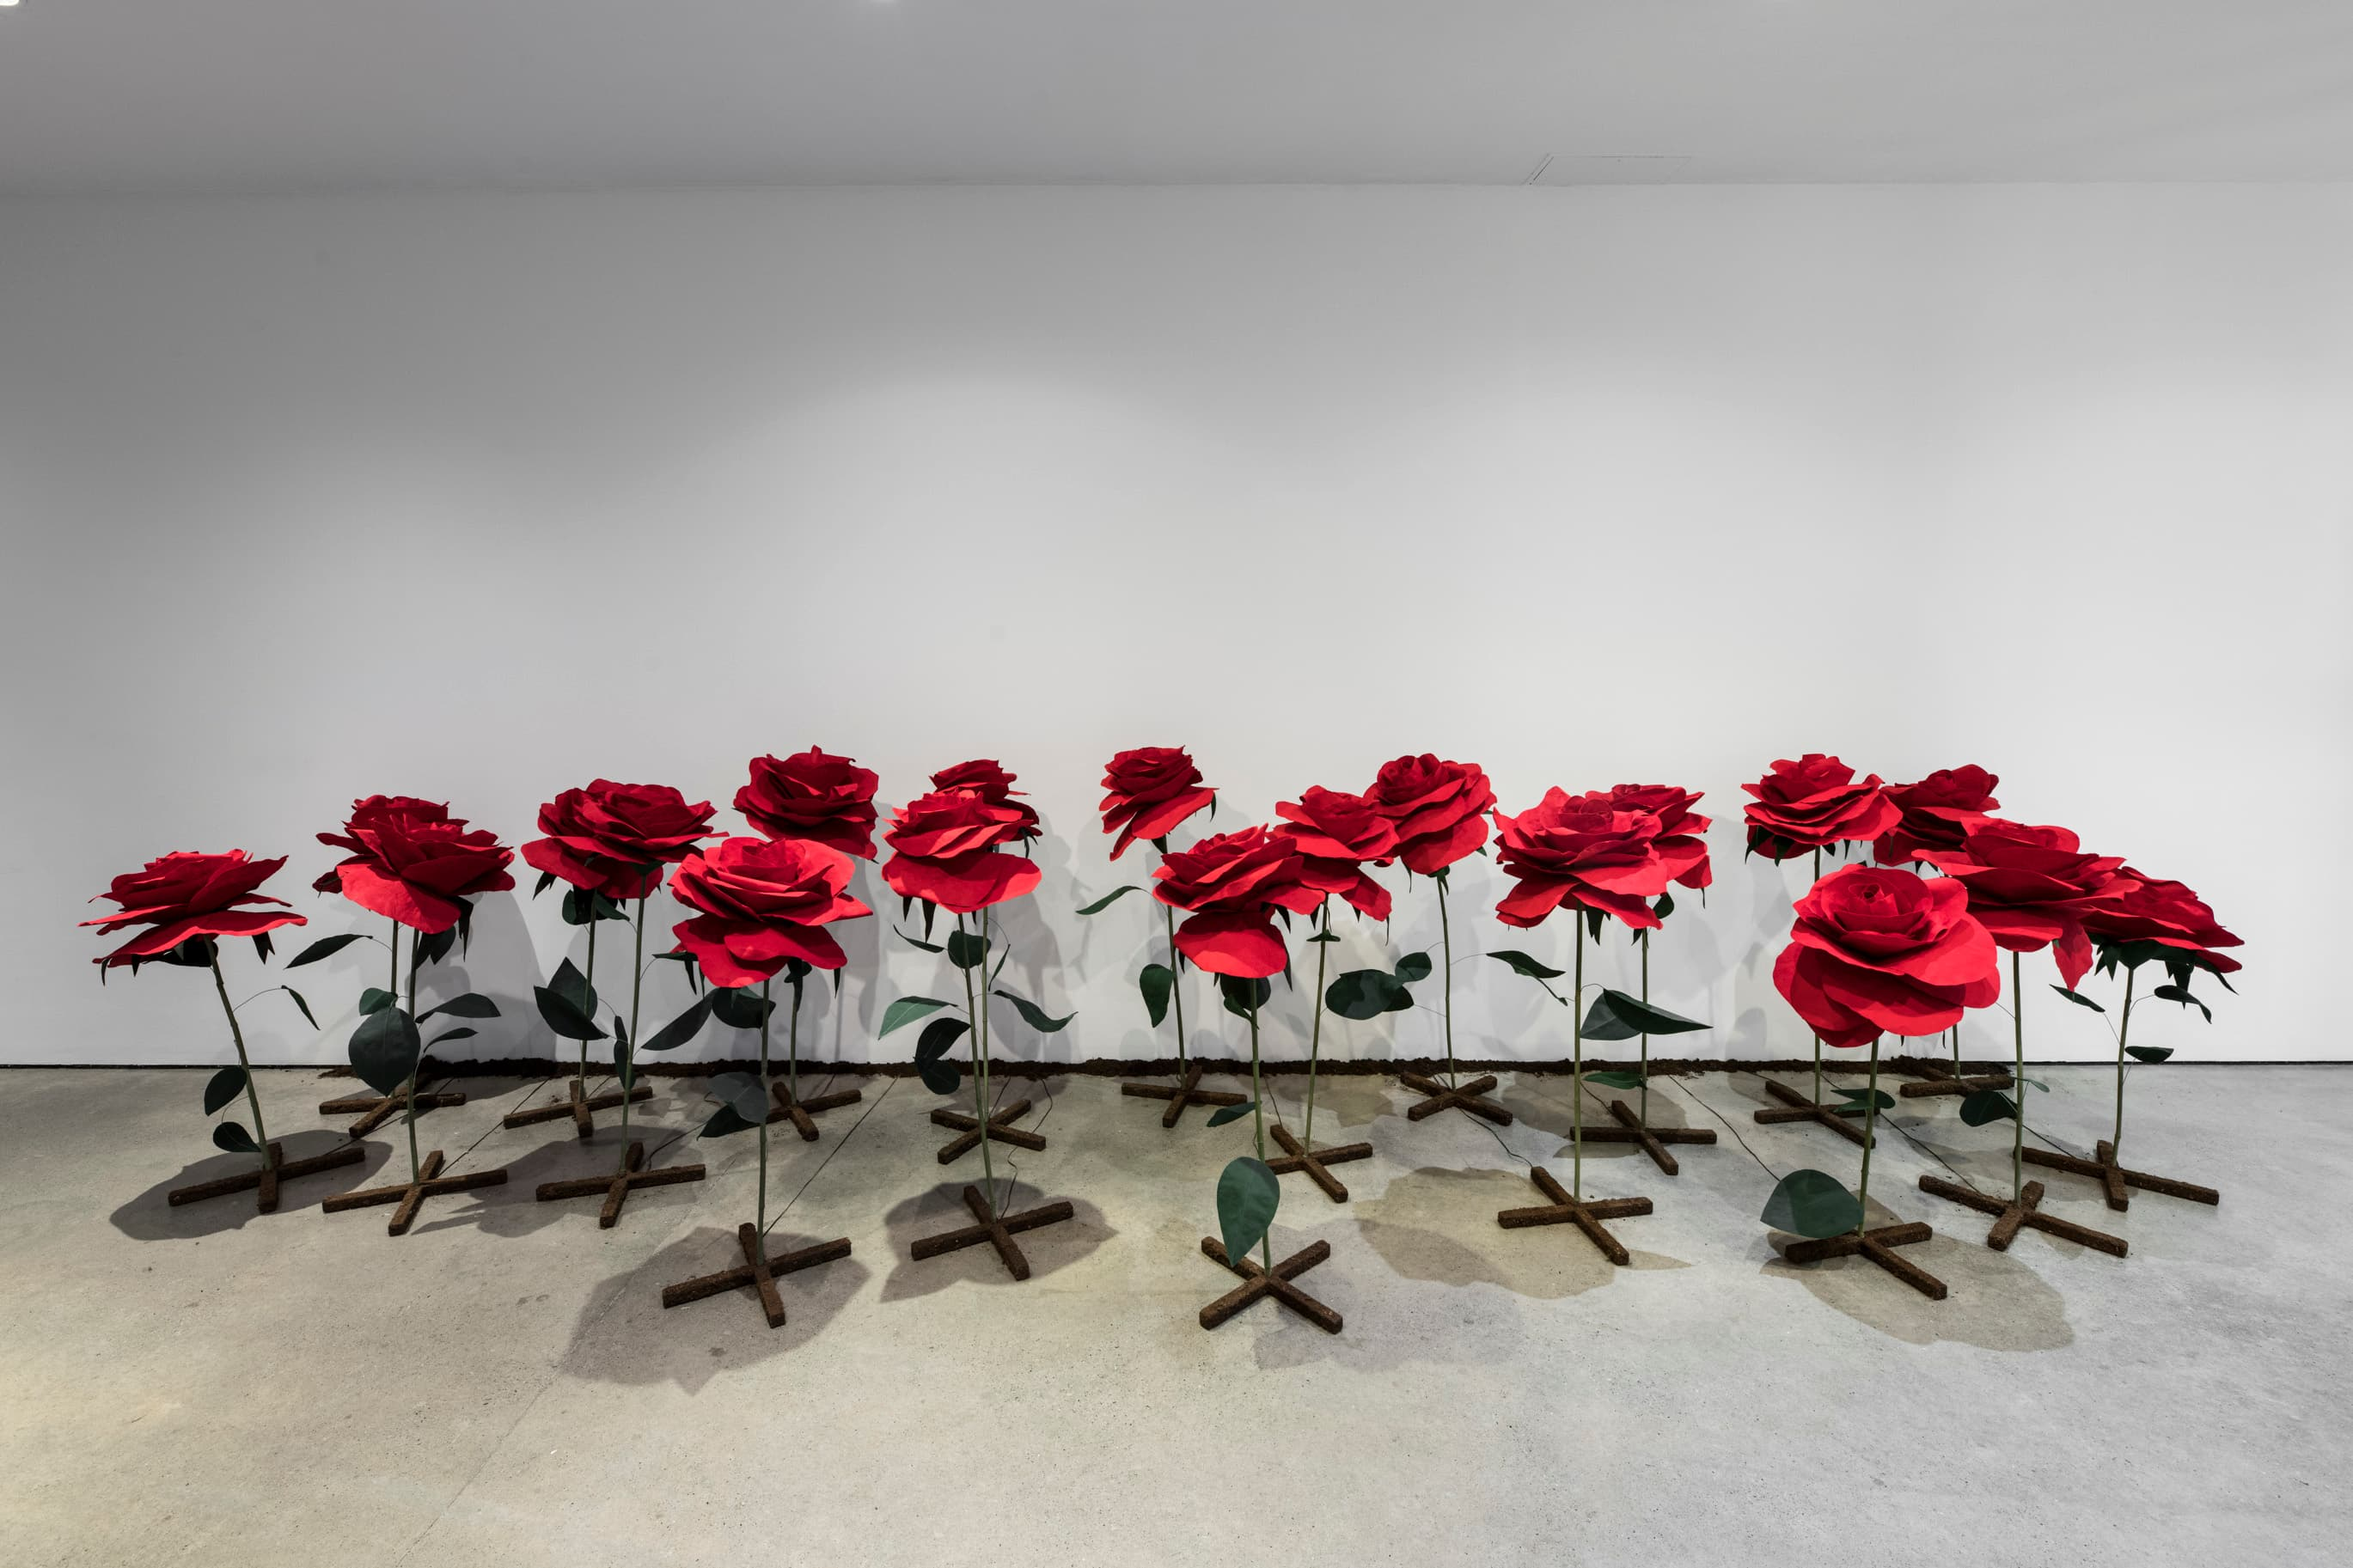 Installation view of Rita McKeoughs exhibition with red roses